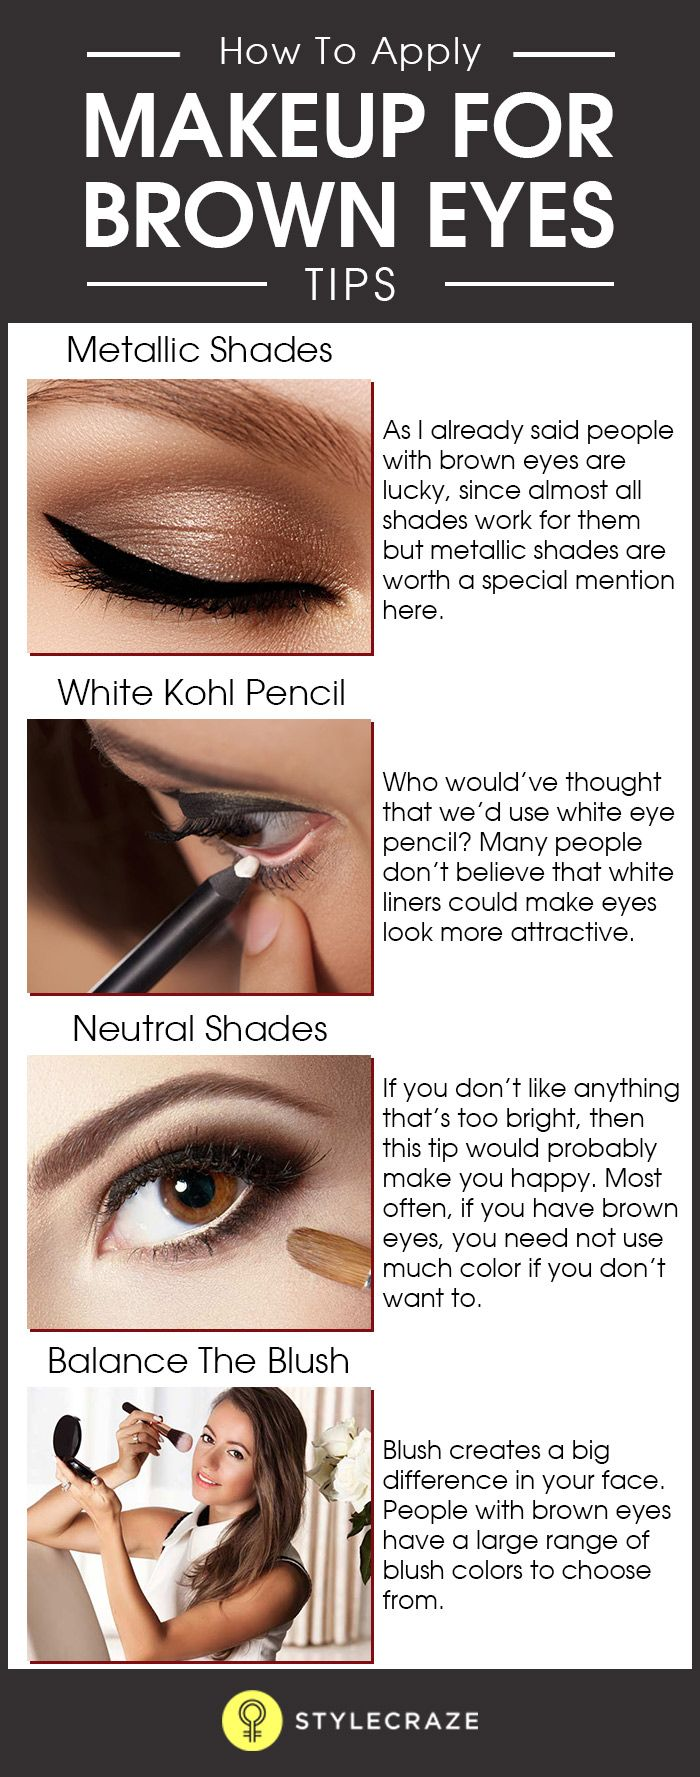 If you have brown eyes, then you're in luck, because nearly all kinds of colors would look good on you. However, there are a few things that you can do to make your eyes look brighter and make them pop. Let's look at some of the tips, shall we?